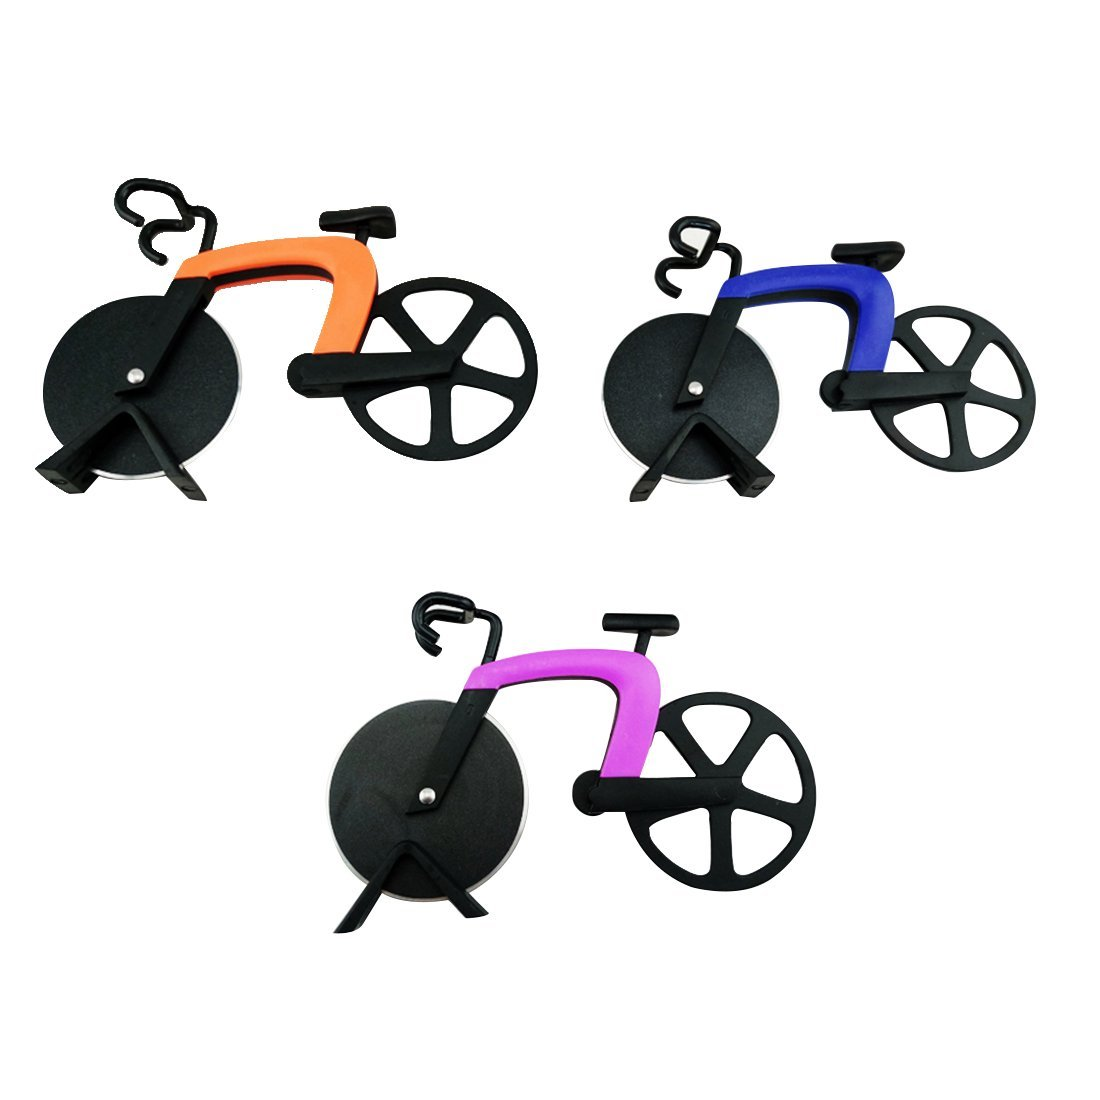 Wall of Dragon Bicycle Pizza Cutter Stainless Steel Bike Pizza Cutter Creative Cooking Tools